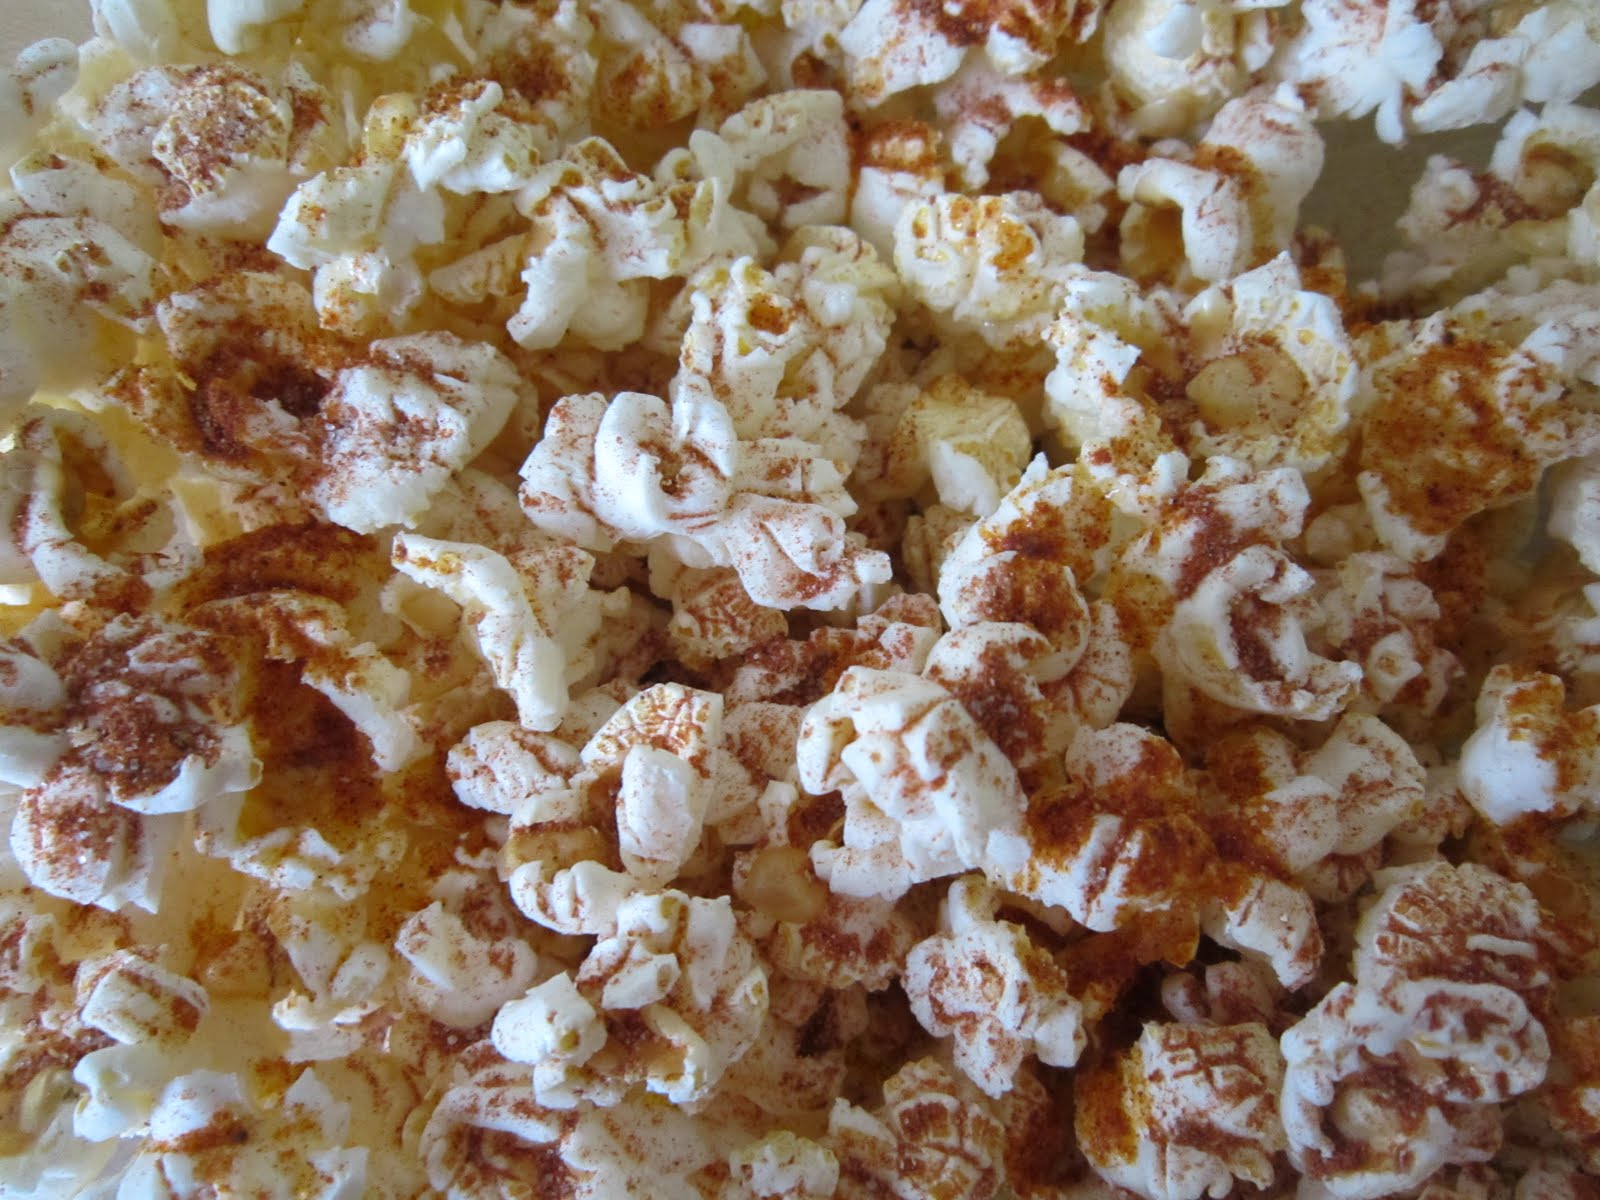 Mix It Up: BBQ popcorn and chip seasoning mix